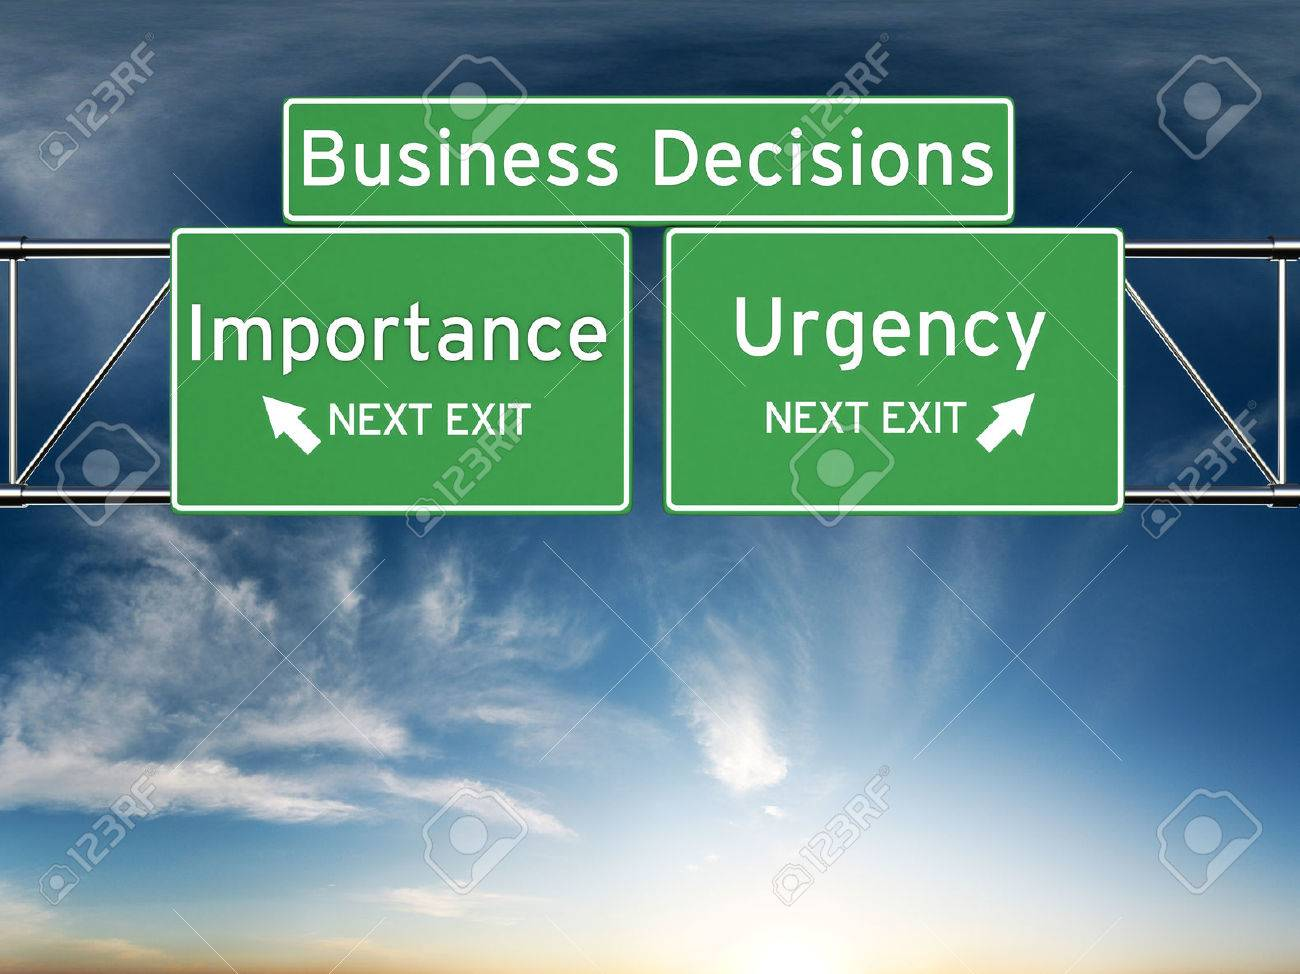 Business decision making focusing on decisions of importance or urgency. Standard-Bild - 43954927